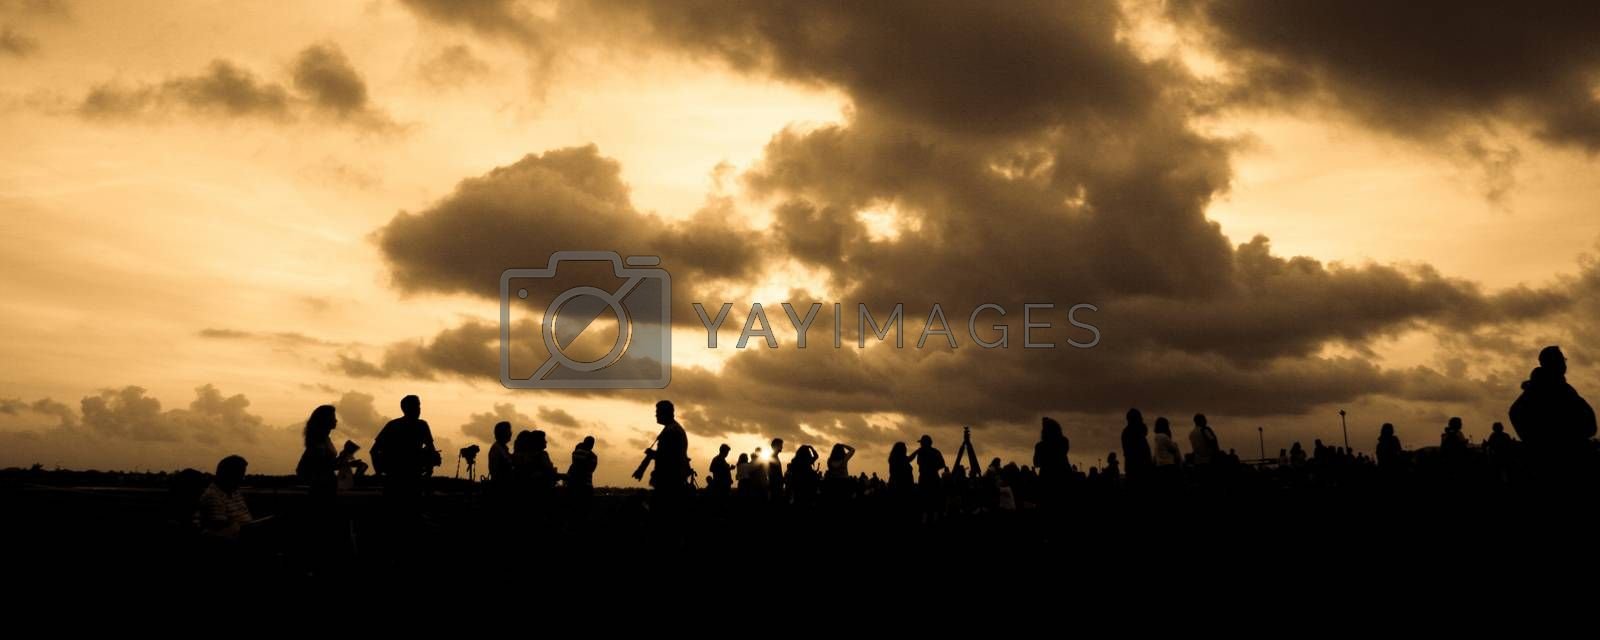 Silhouette of photographers waiting for balloon race in Miami, Miami-Dade County, Florida, USA